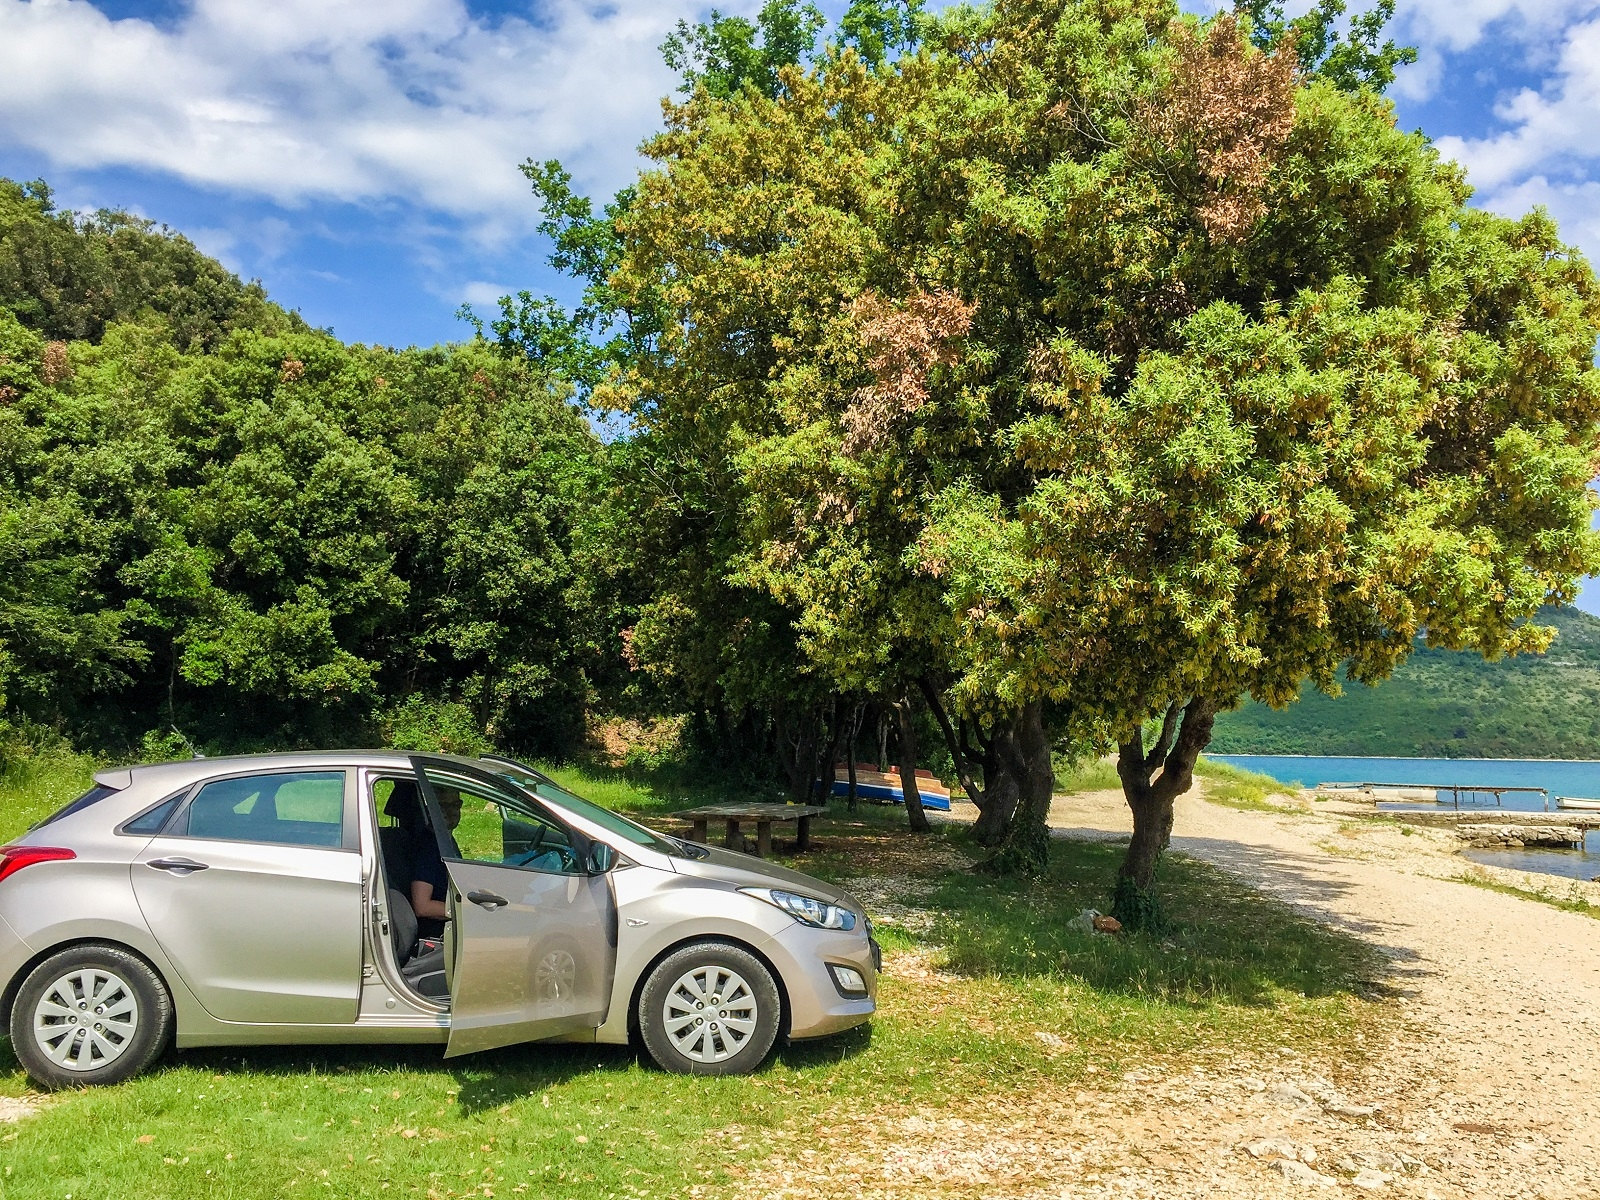 Driving in Croatia: Things to know before you go - A Pair of Travel